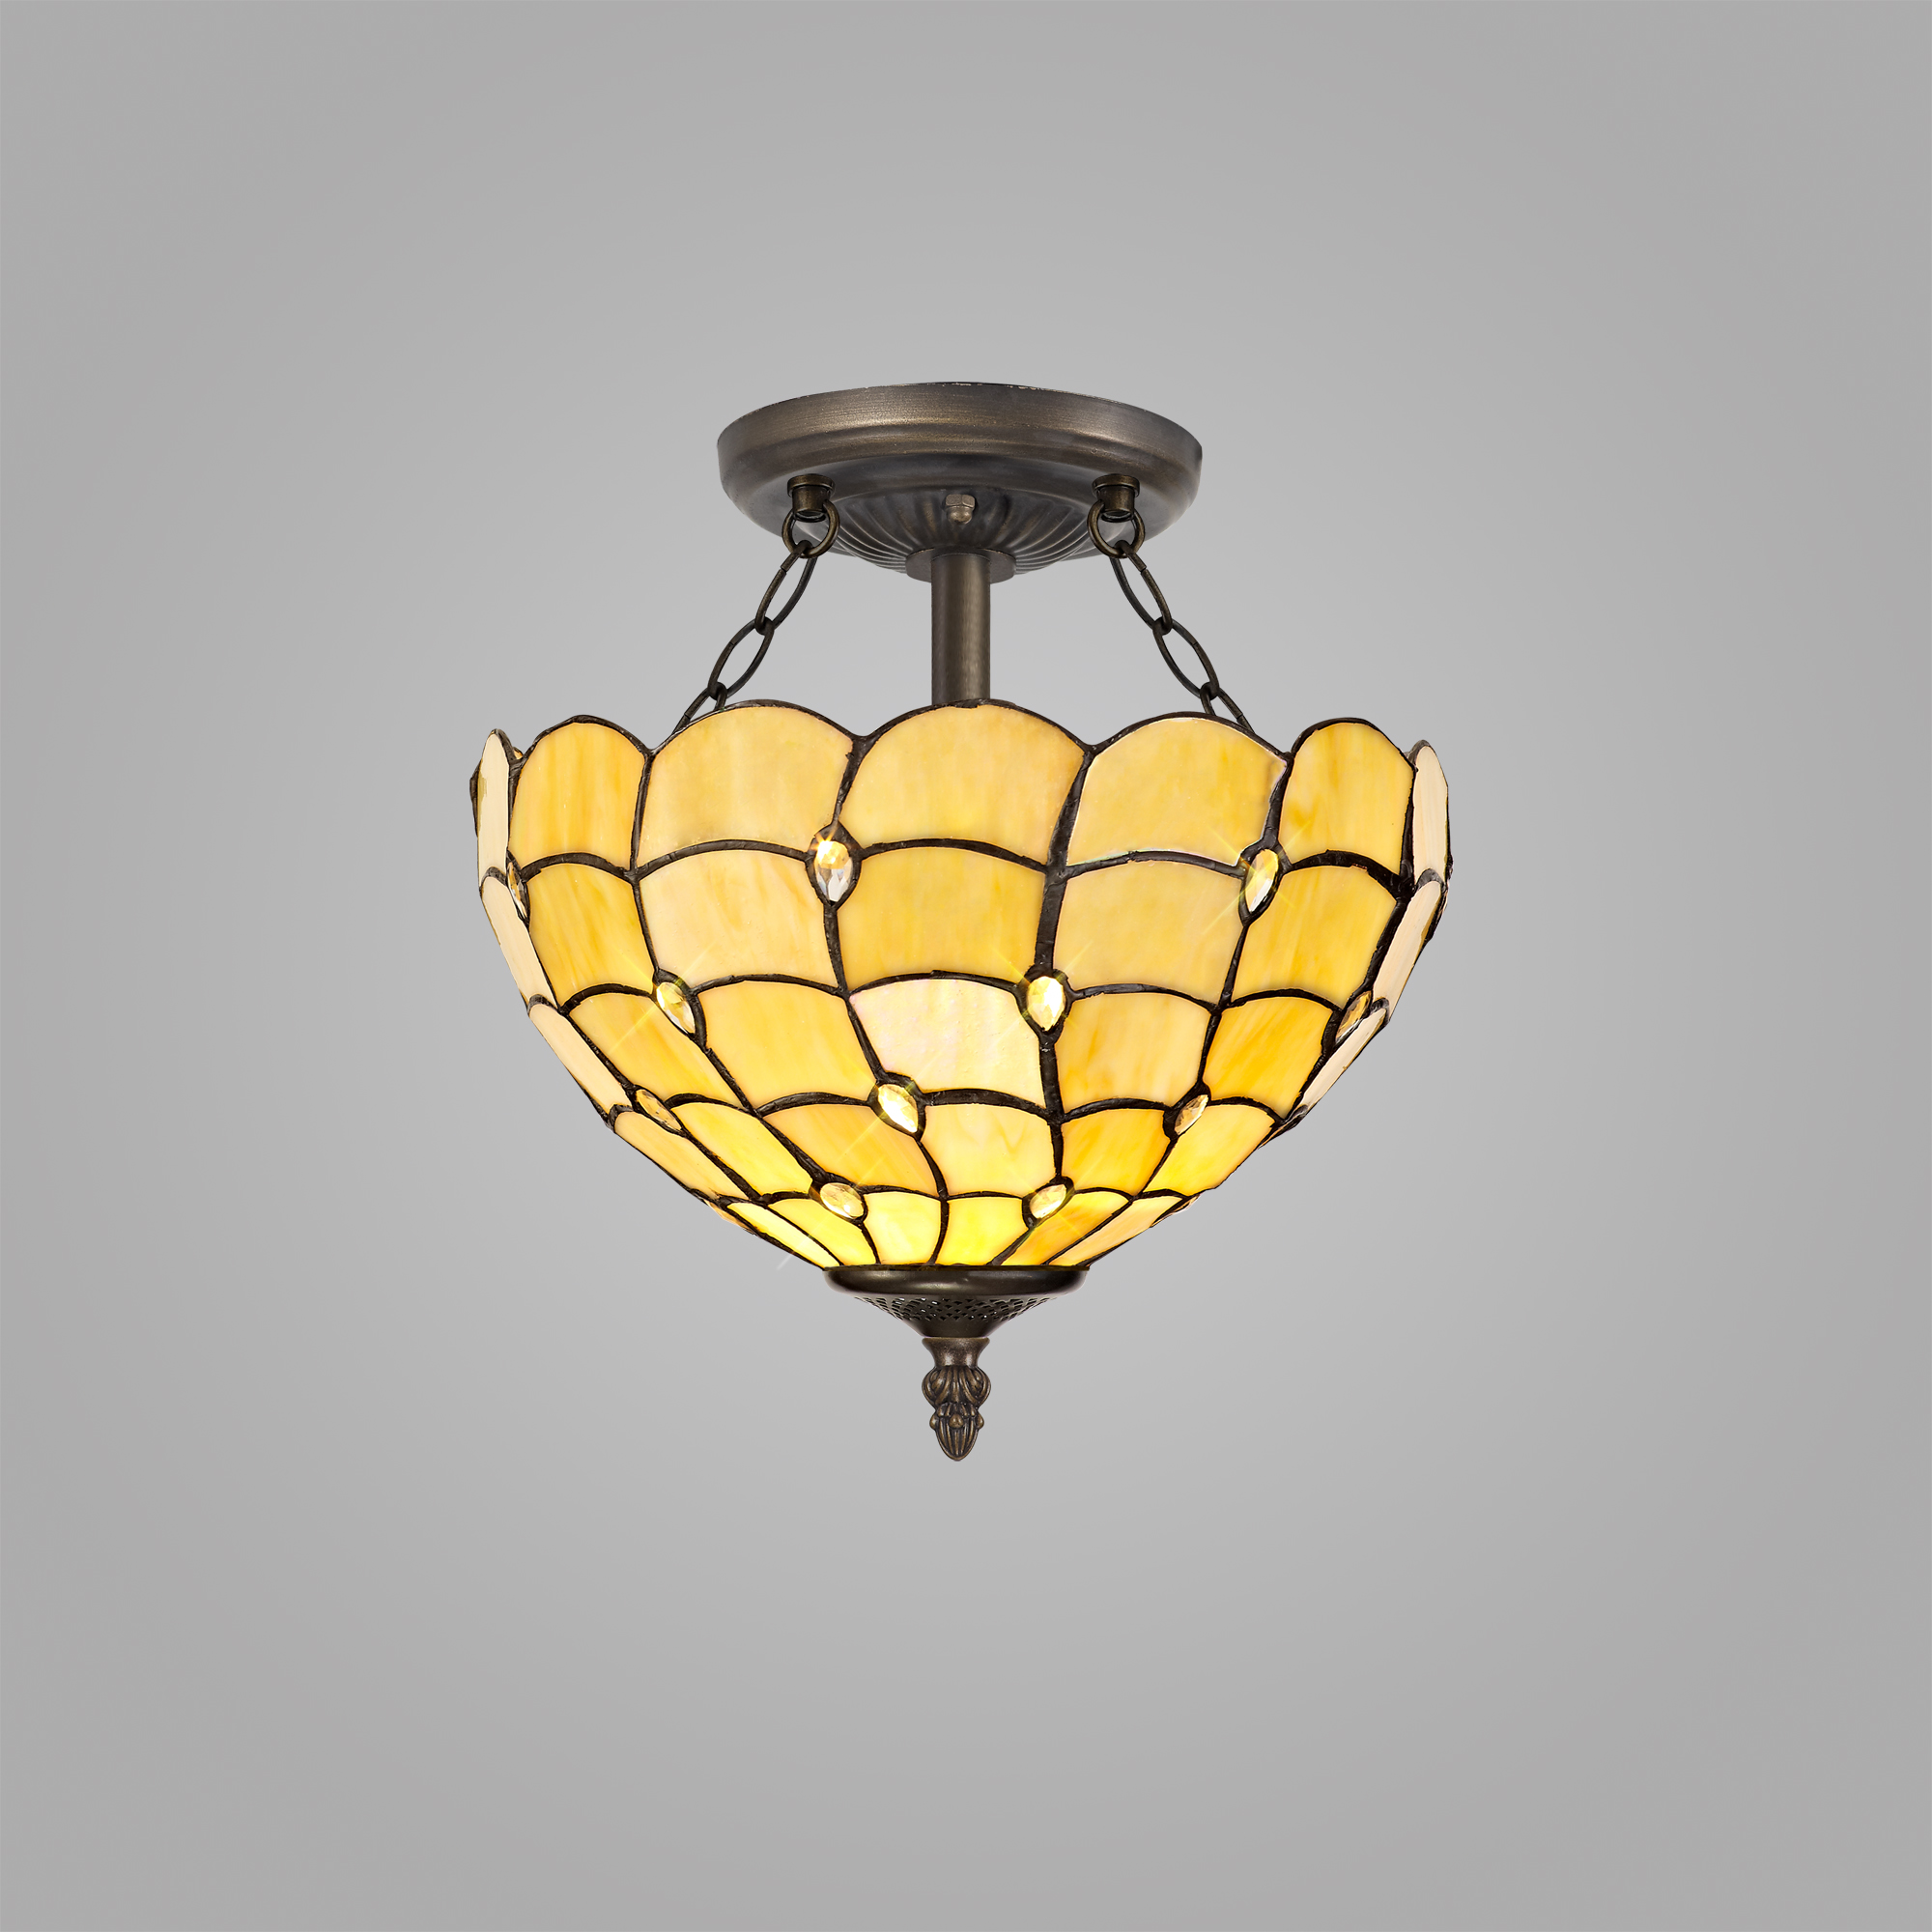 2 Light Semi Ceiling E27 With 30cm Tiffany Shade, Beige/Clear Crystal/Aged Antique Brass